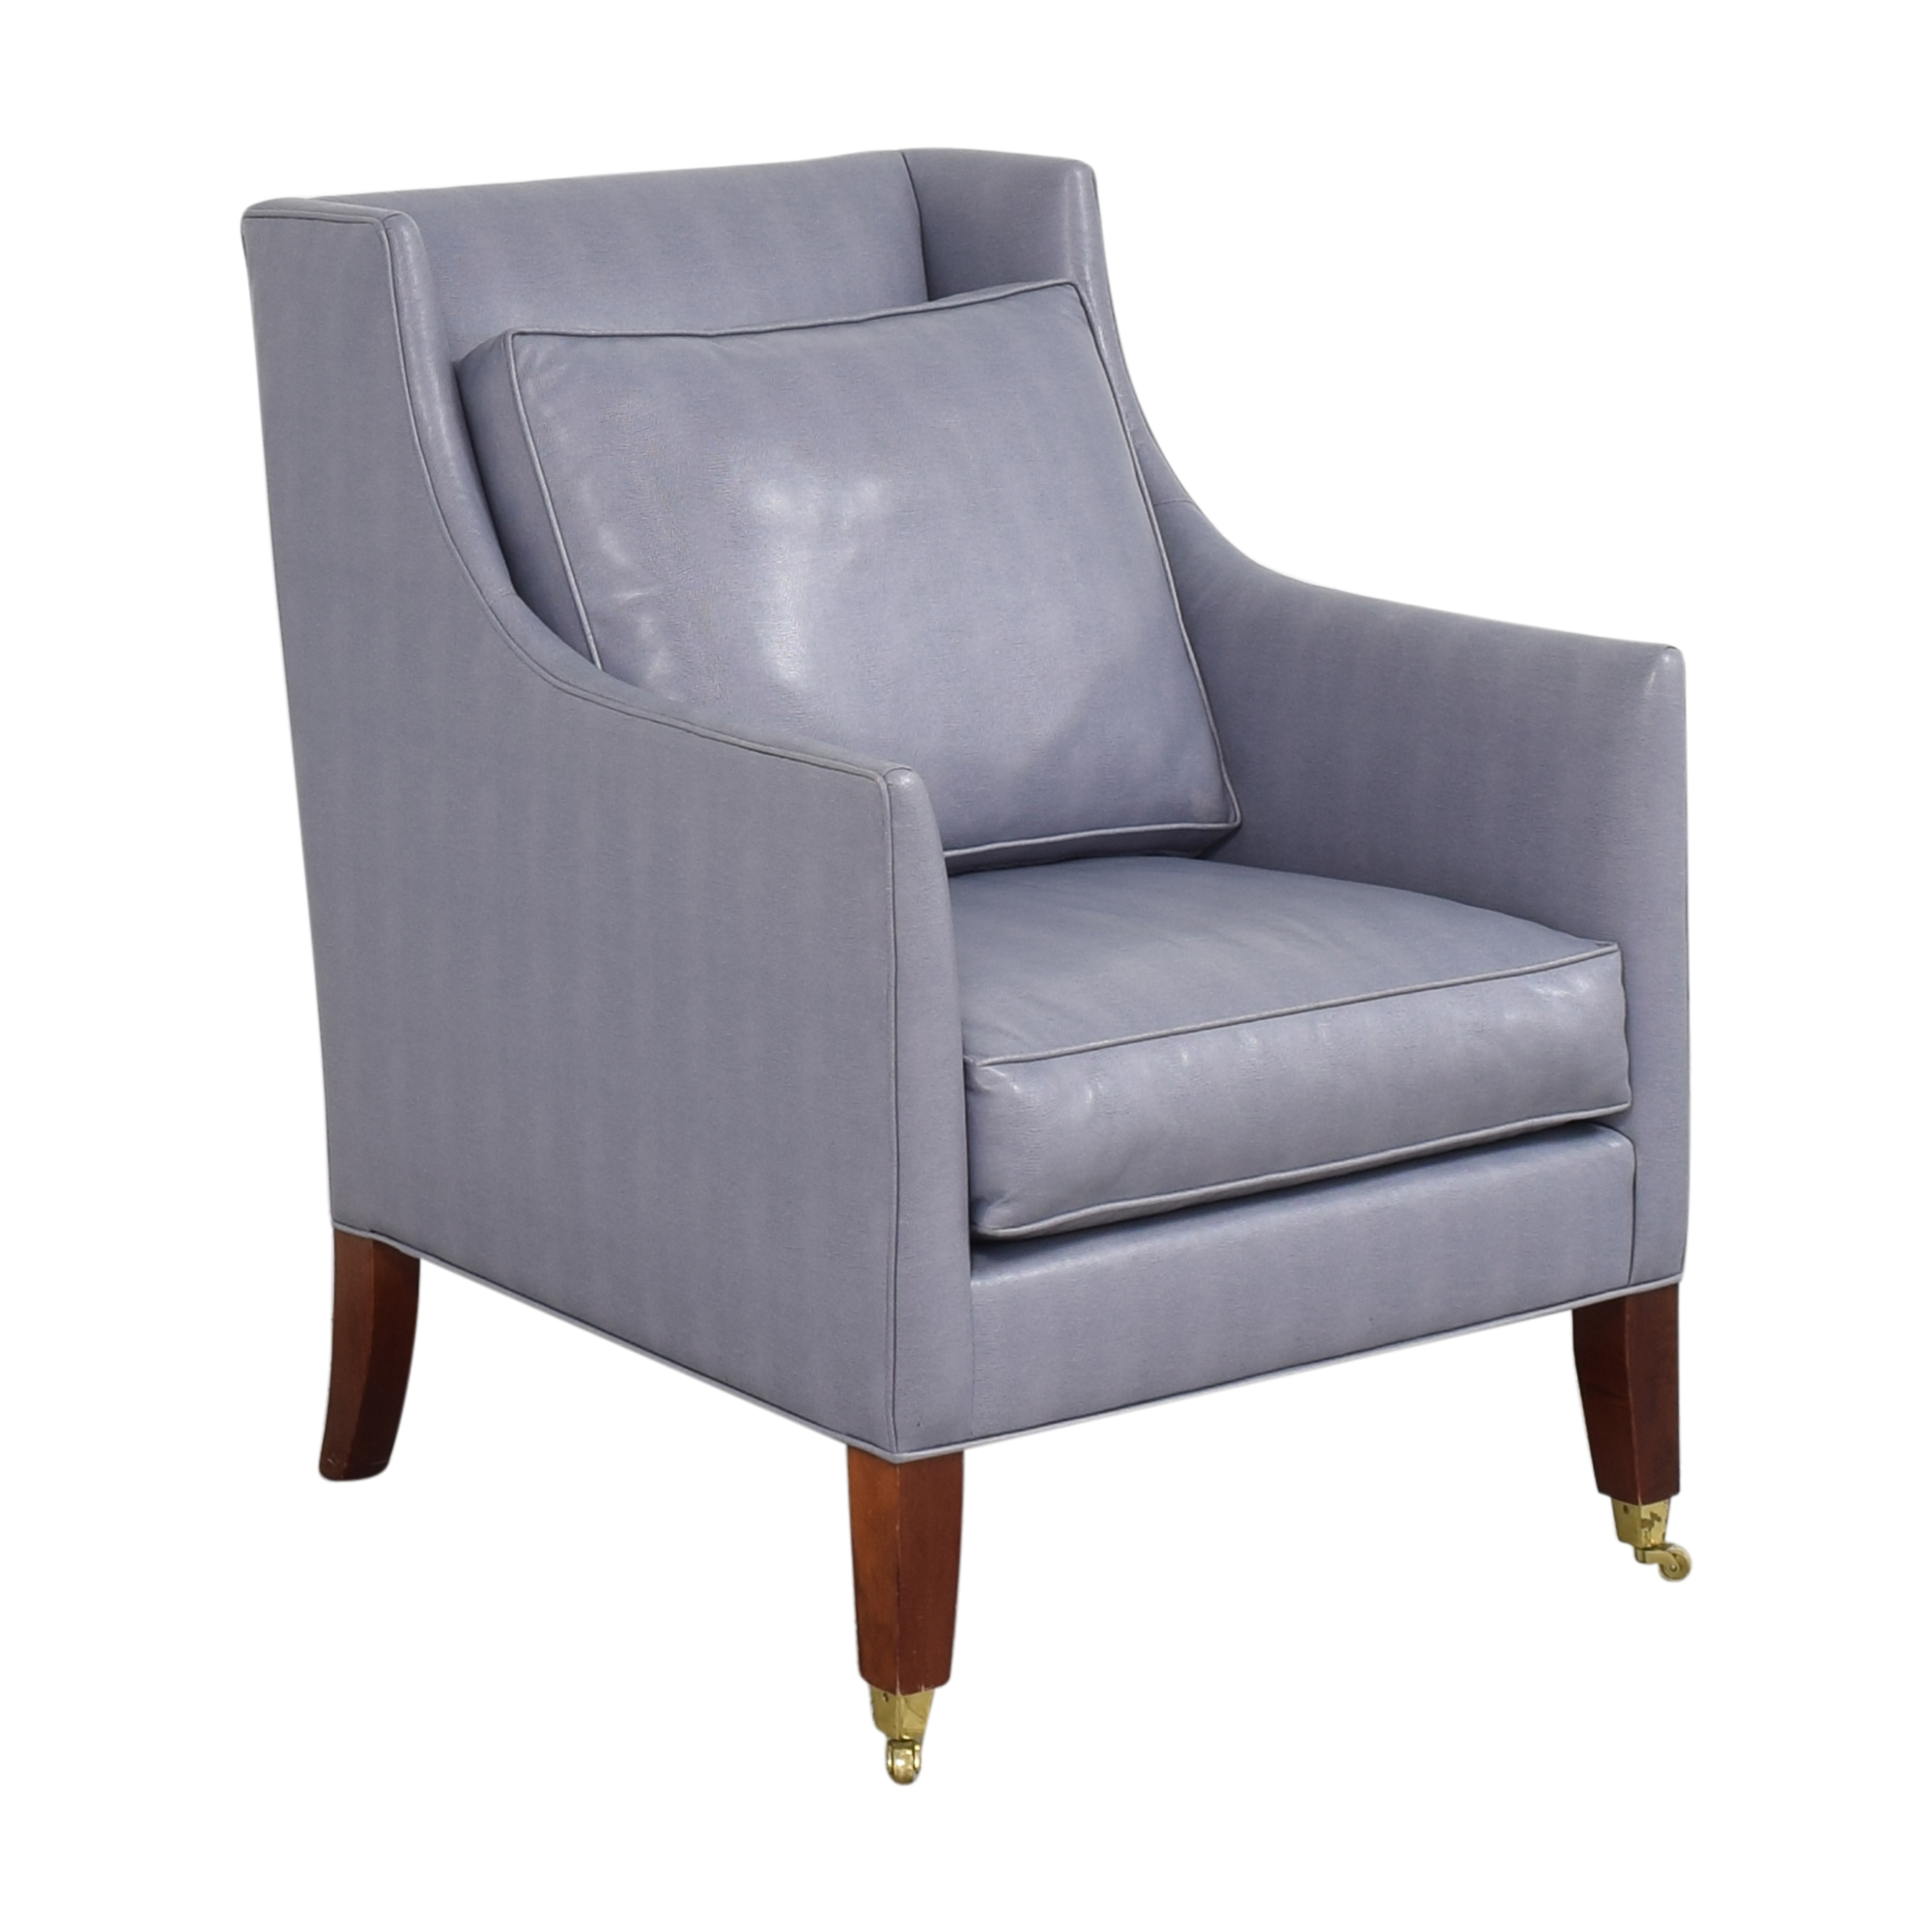 Baker Furniture Milling Road Accent Chair sale